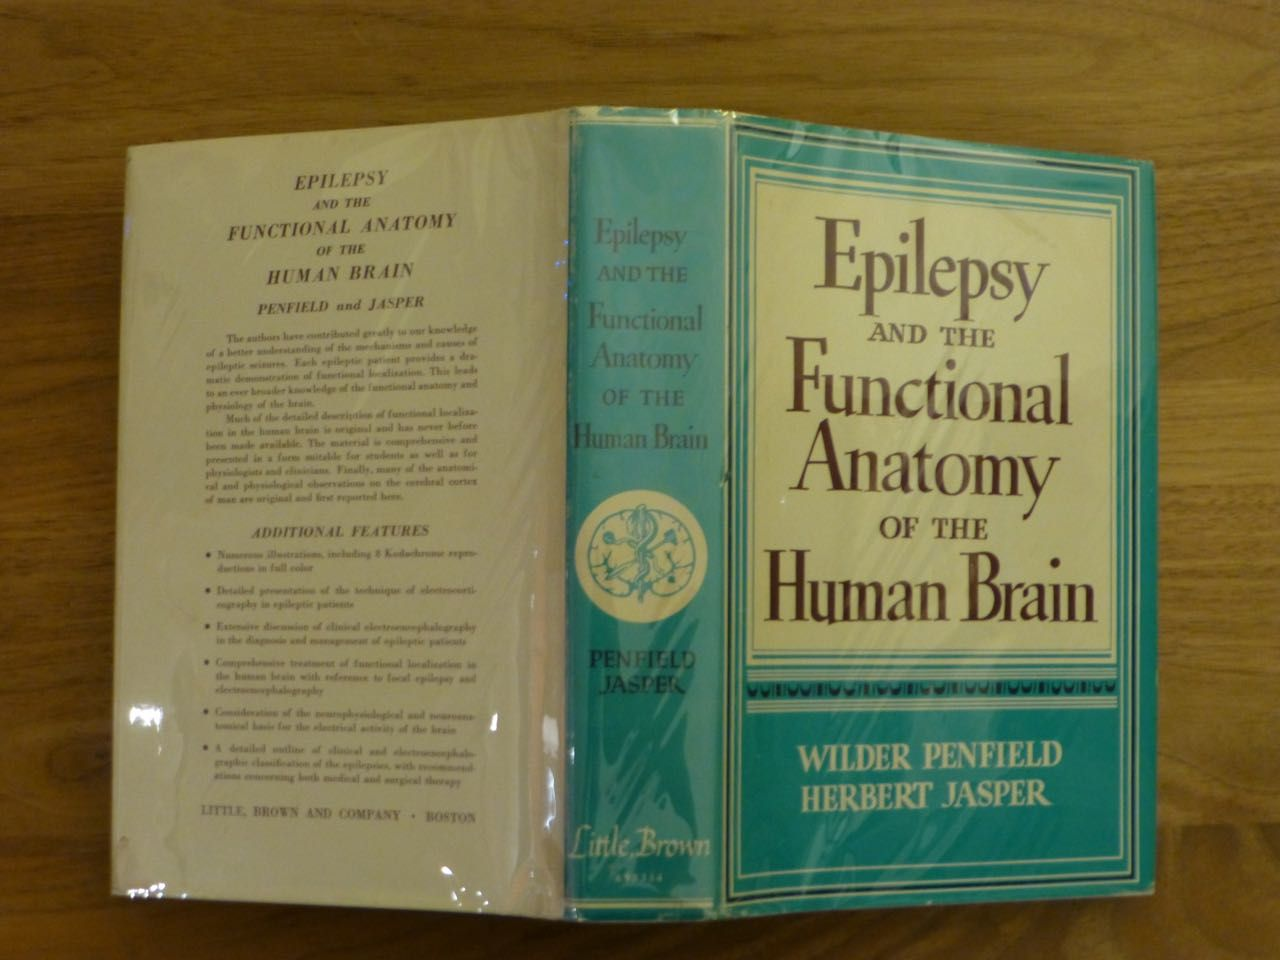 Epilepsy And The Functional Anatomy Of The Human Brain By Penfield